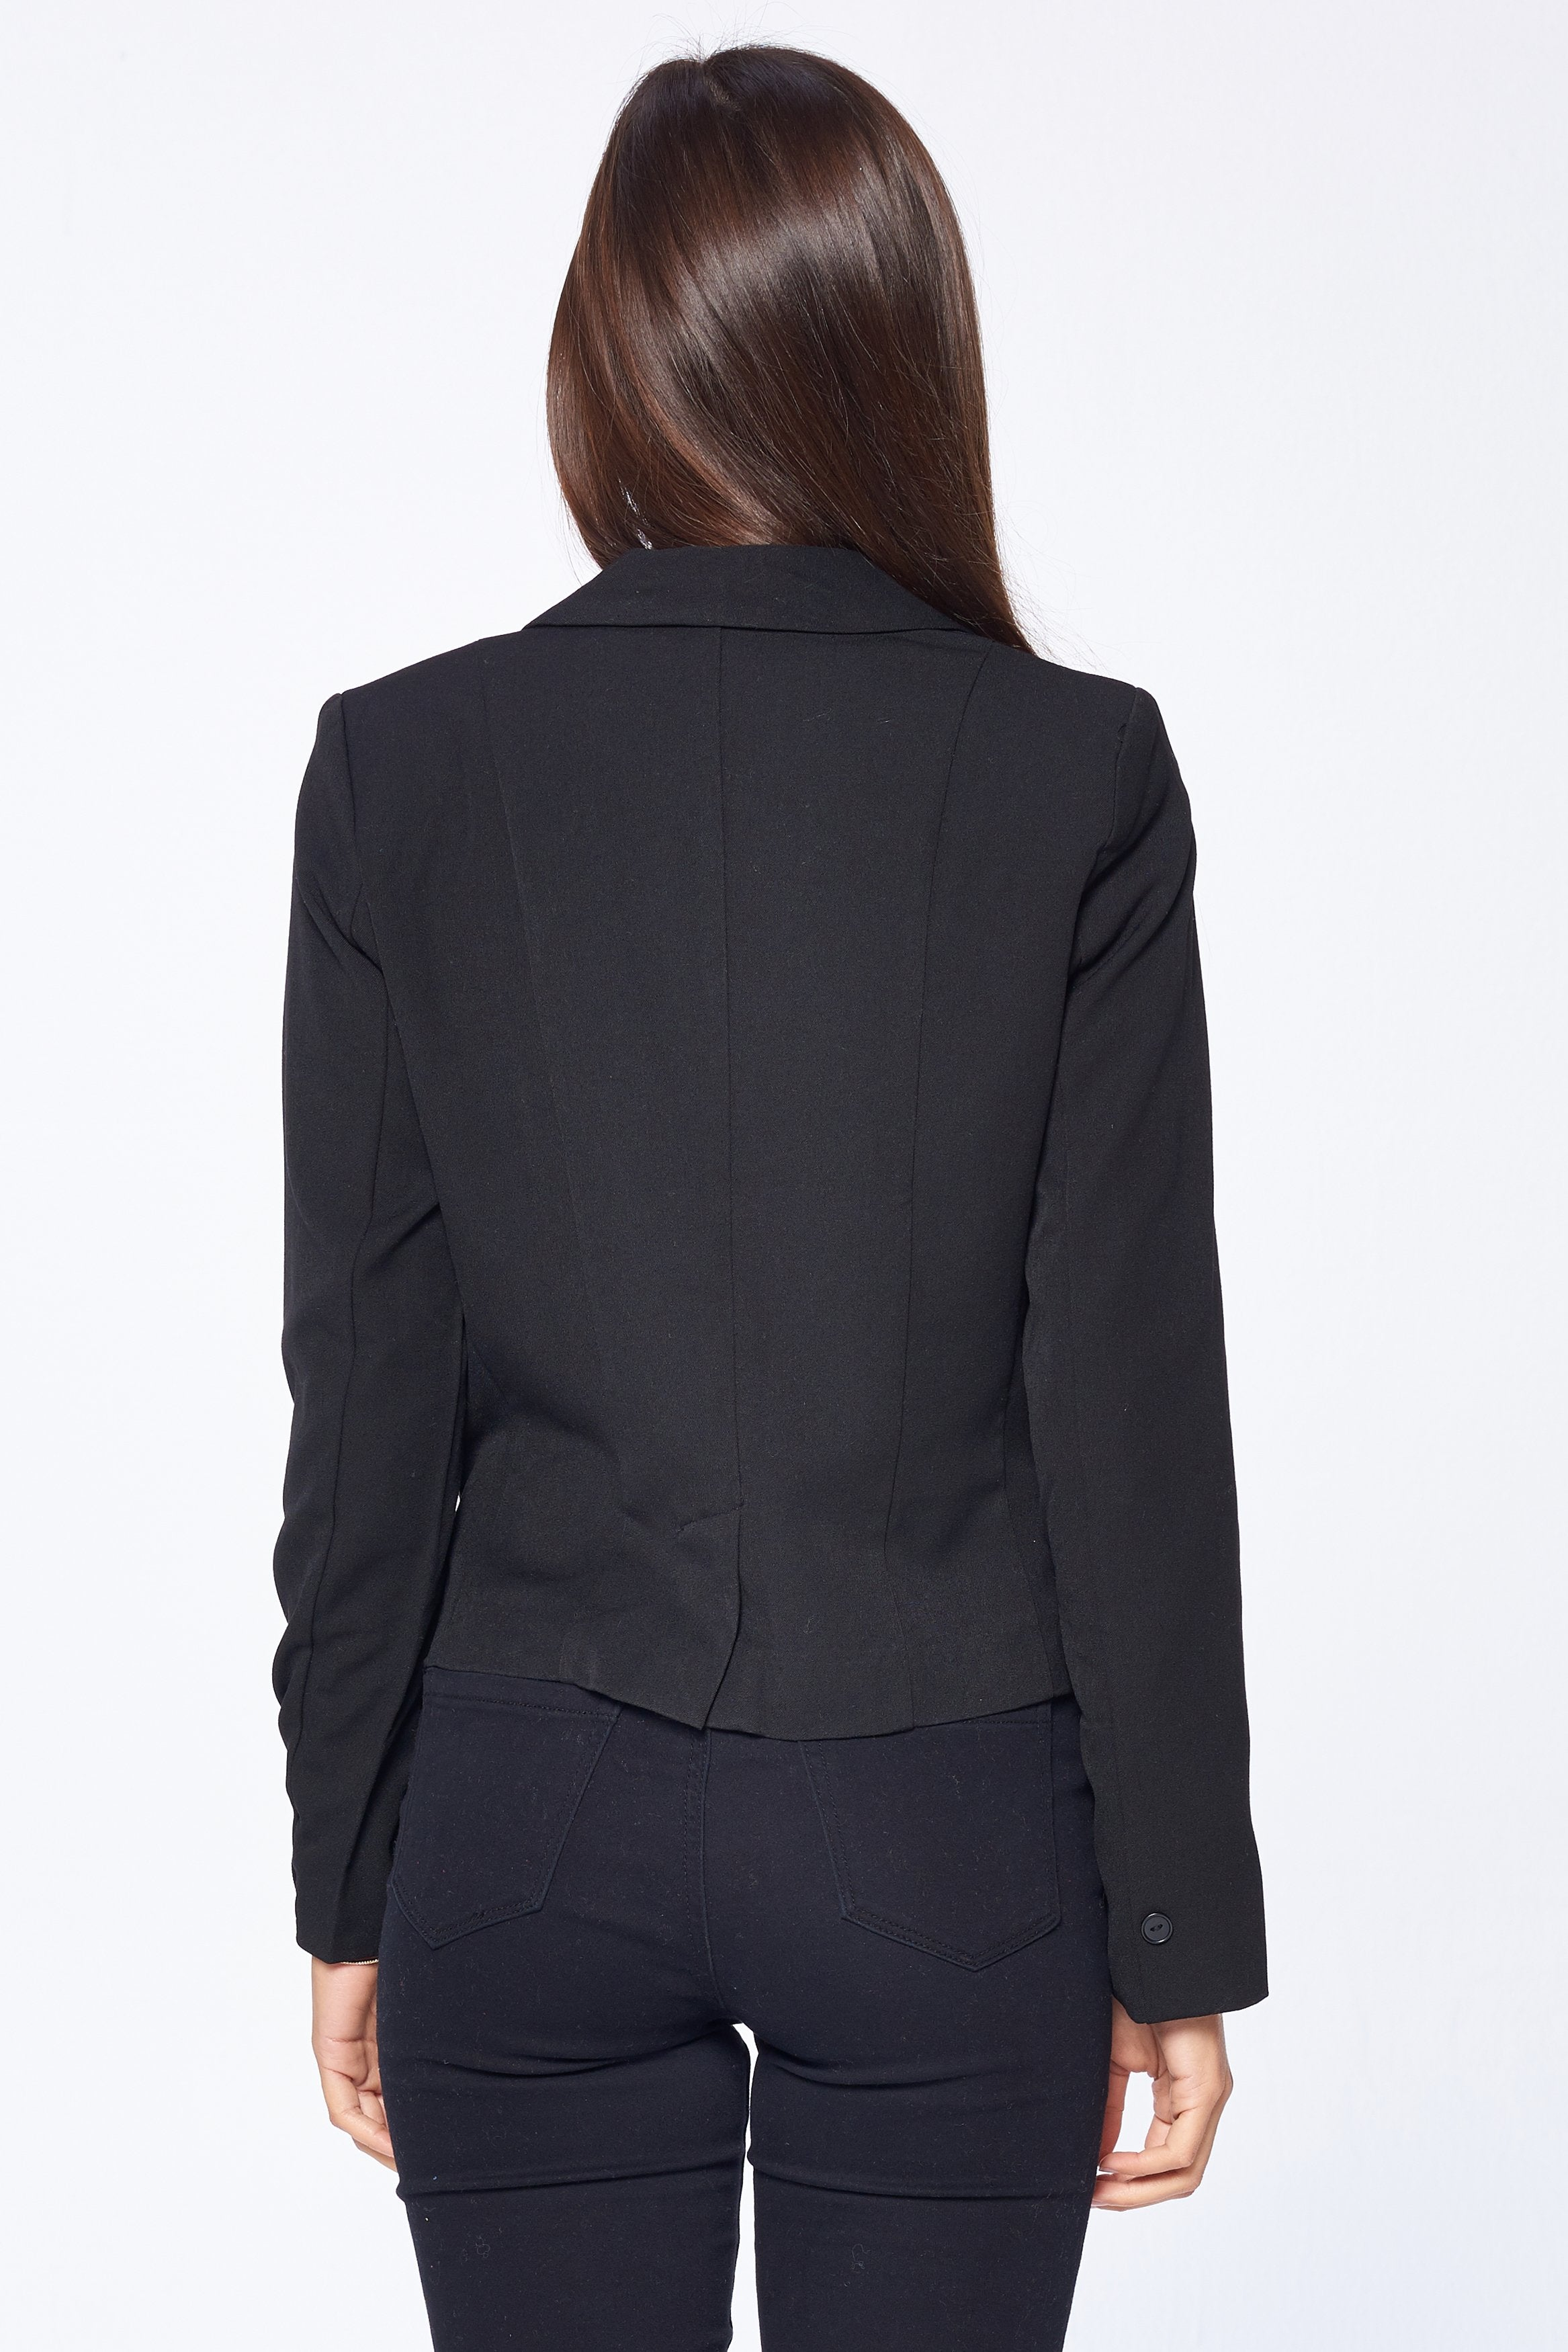 Khanomak Women's Long Sleeve Single Breasted Blazer Jacket